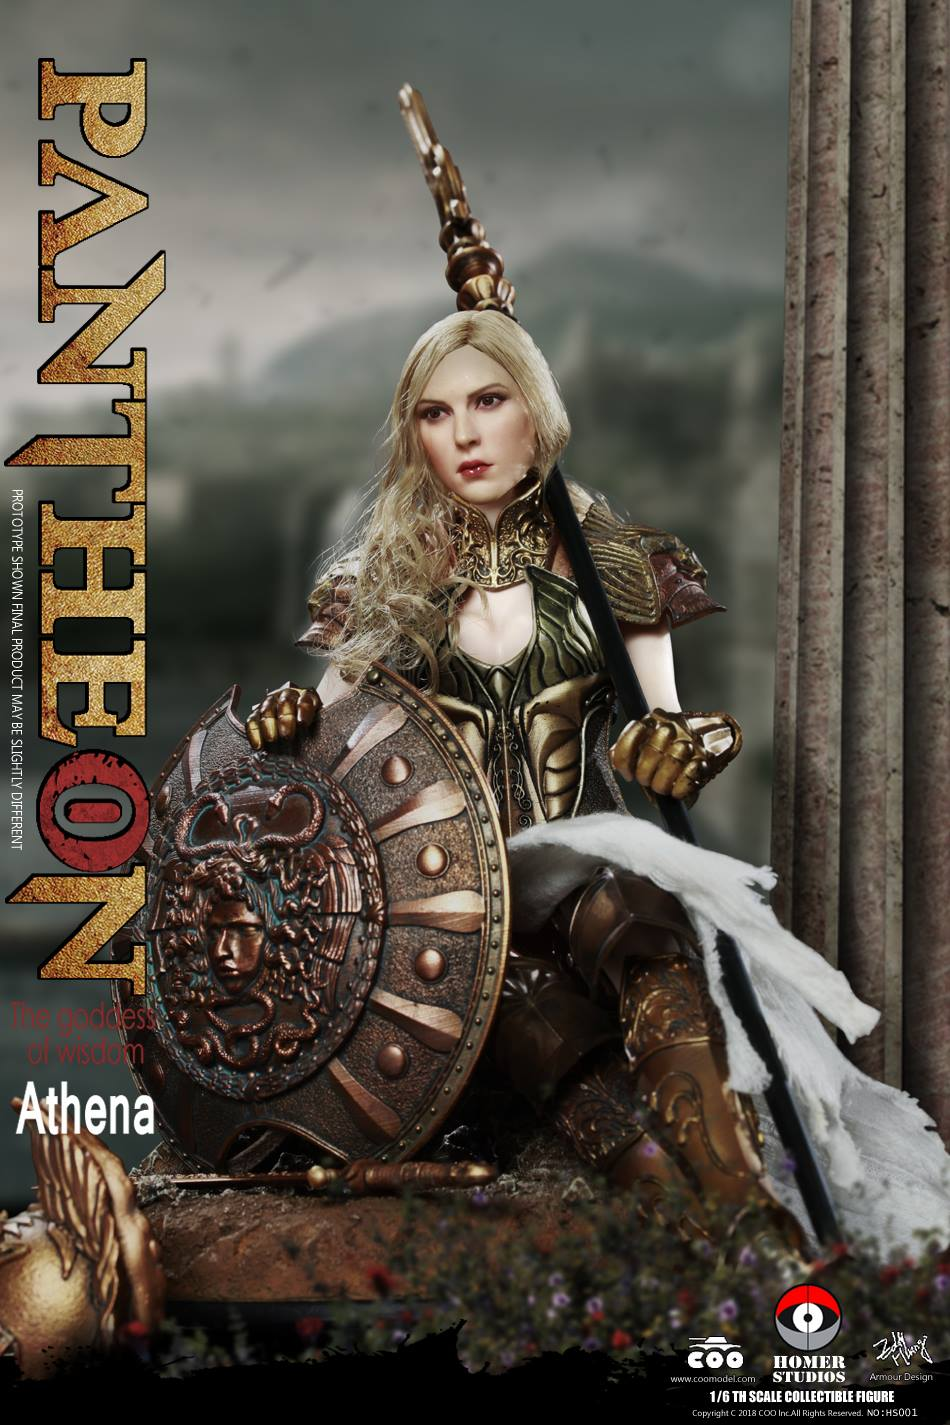 "CooModel - NEW PRODUCT: COO MODEL X HOMER 1/6th scale PANTHEON Athena Goddess of War 12"" Collectible Figure 765"